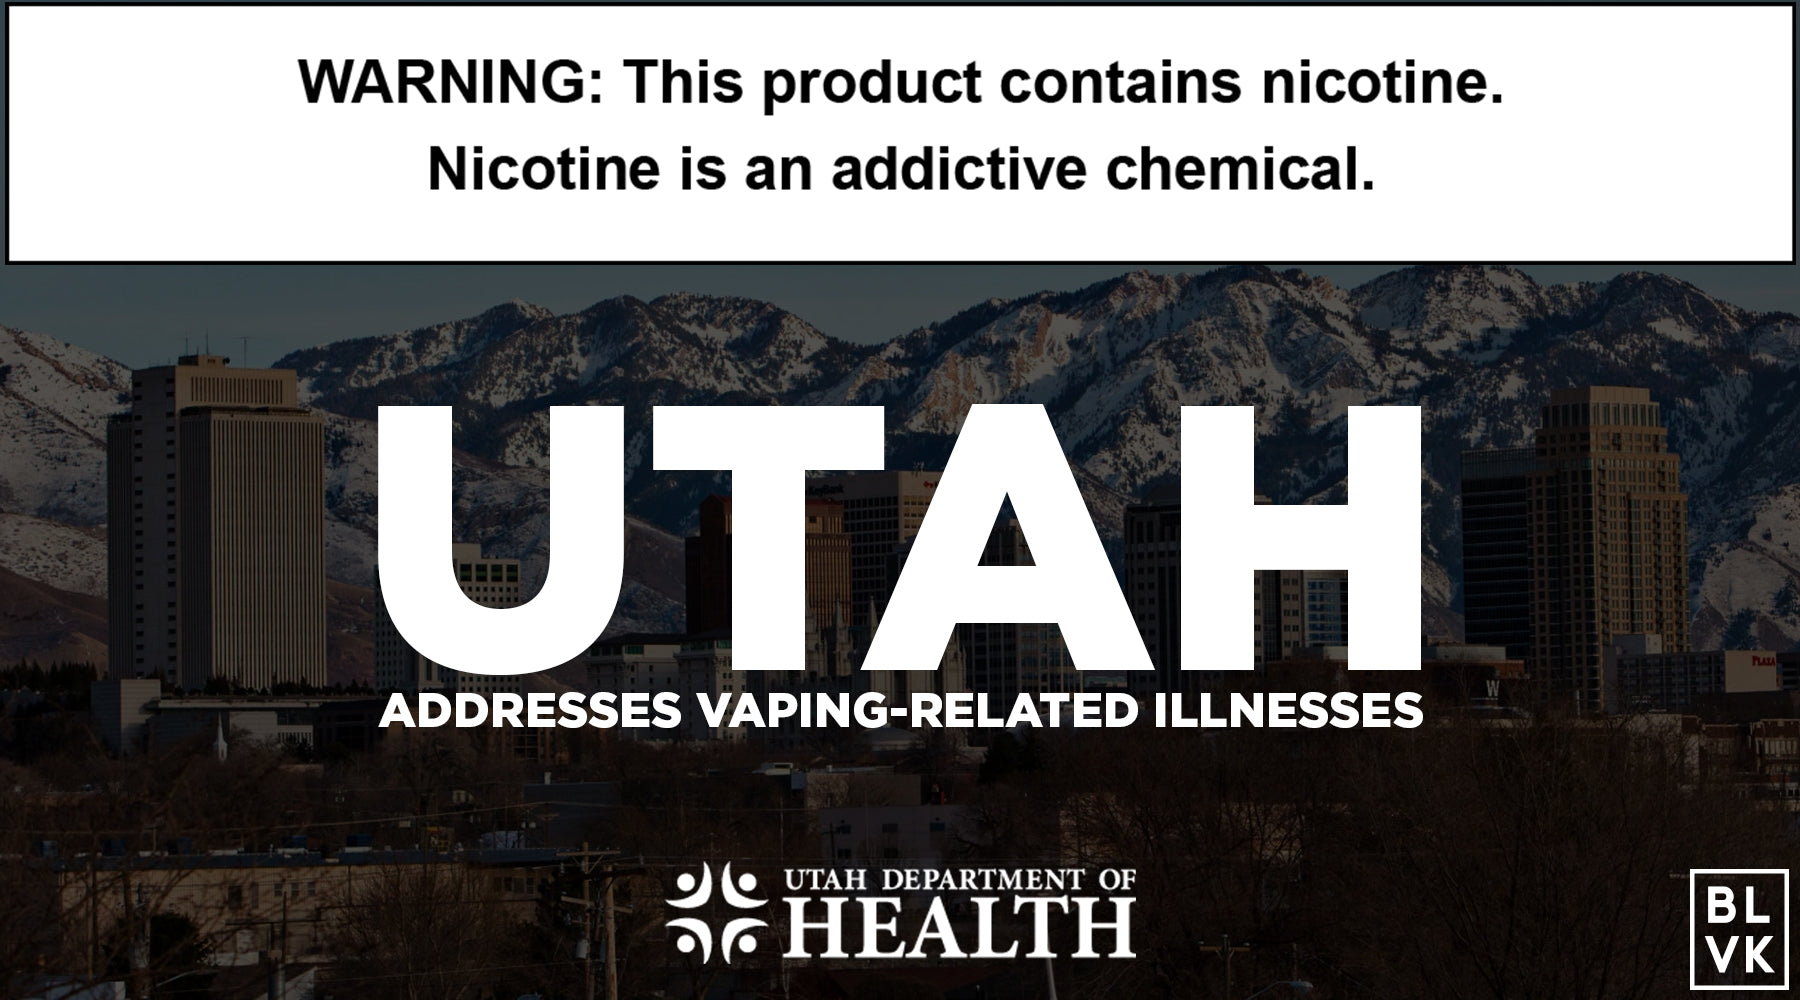 Utah Addresses Vaping-Related Illnesses